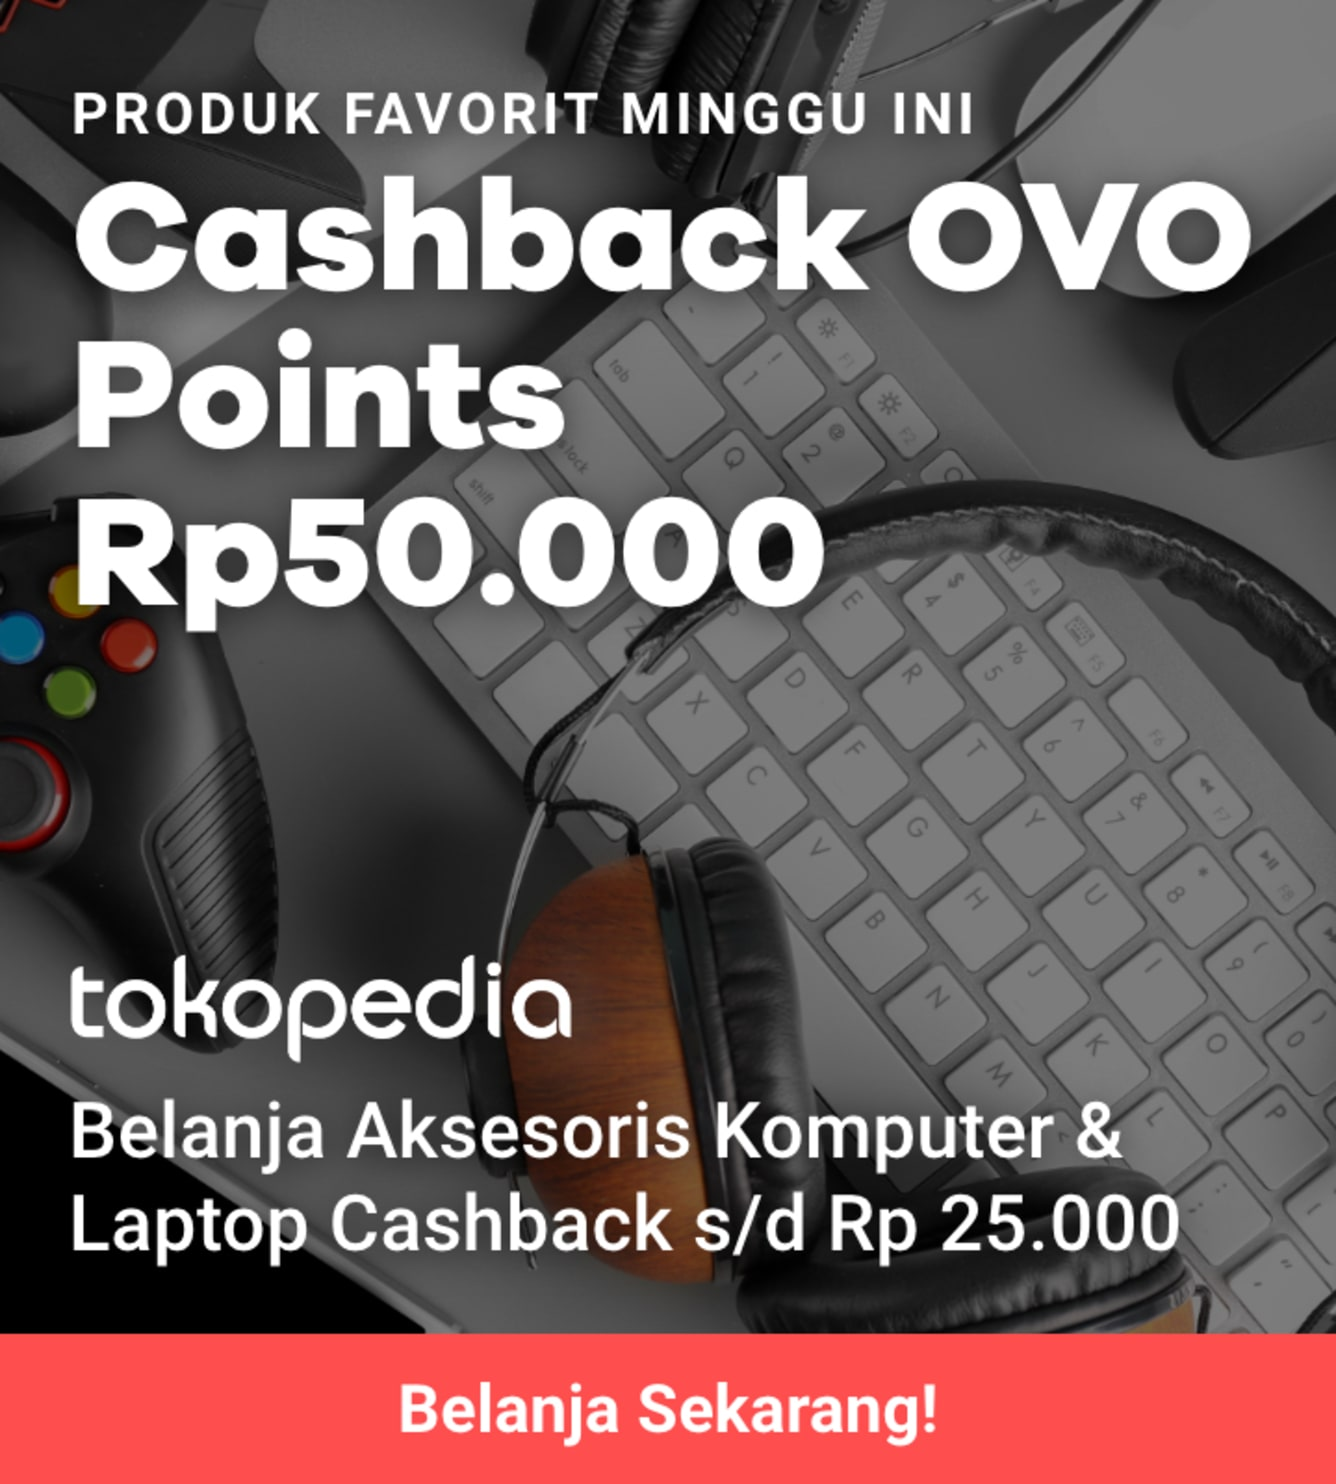 Week 30 - Promo Tokopedia RGX